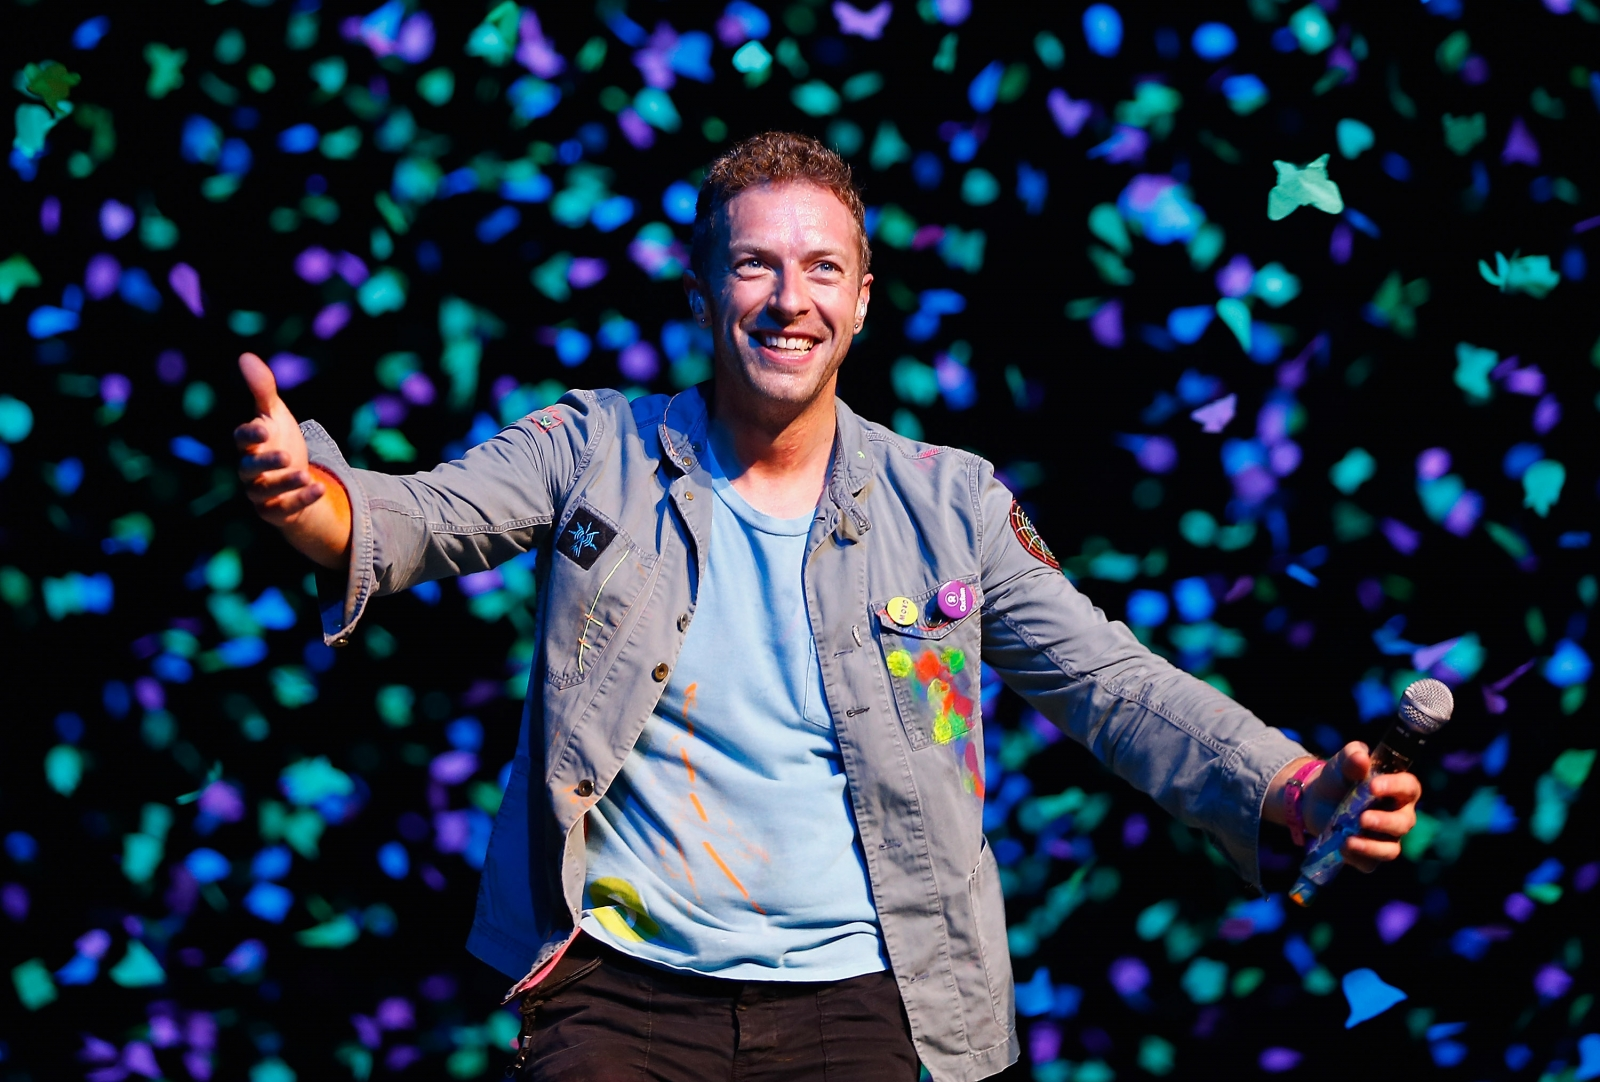 Coldplay singer Chris Martin